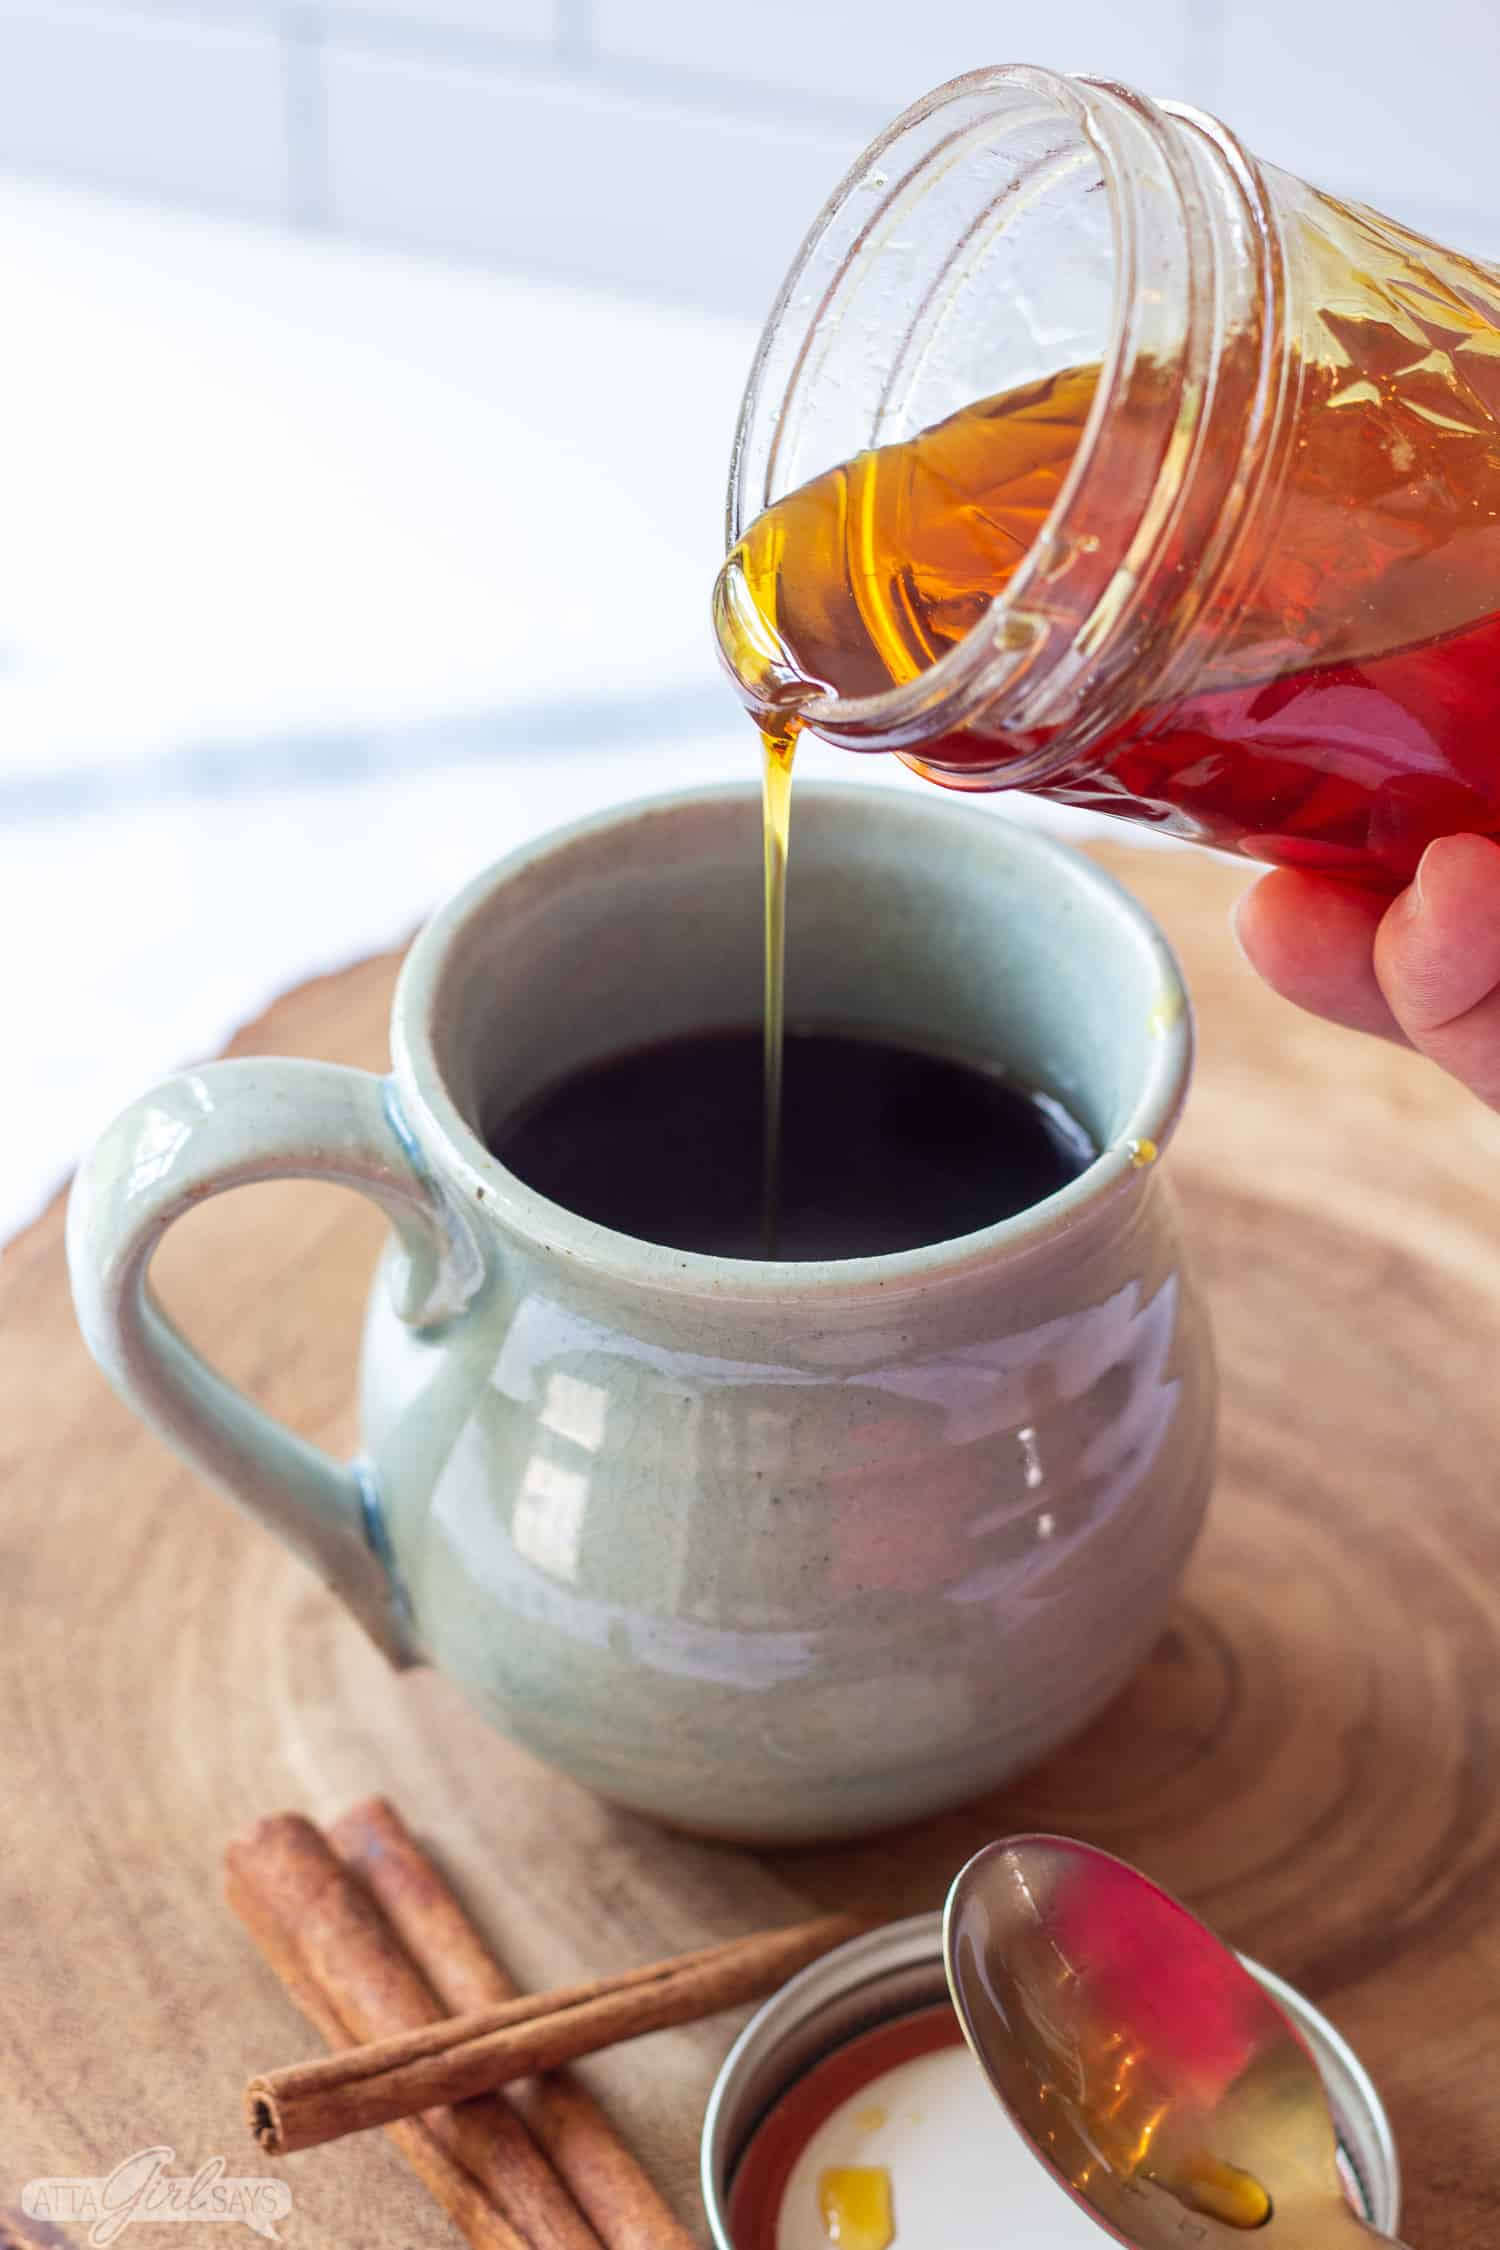 pouring syrup from a jar into a coffee mug